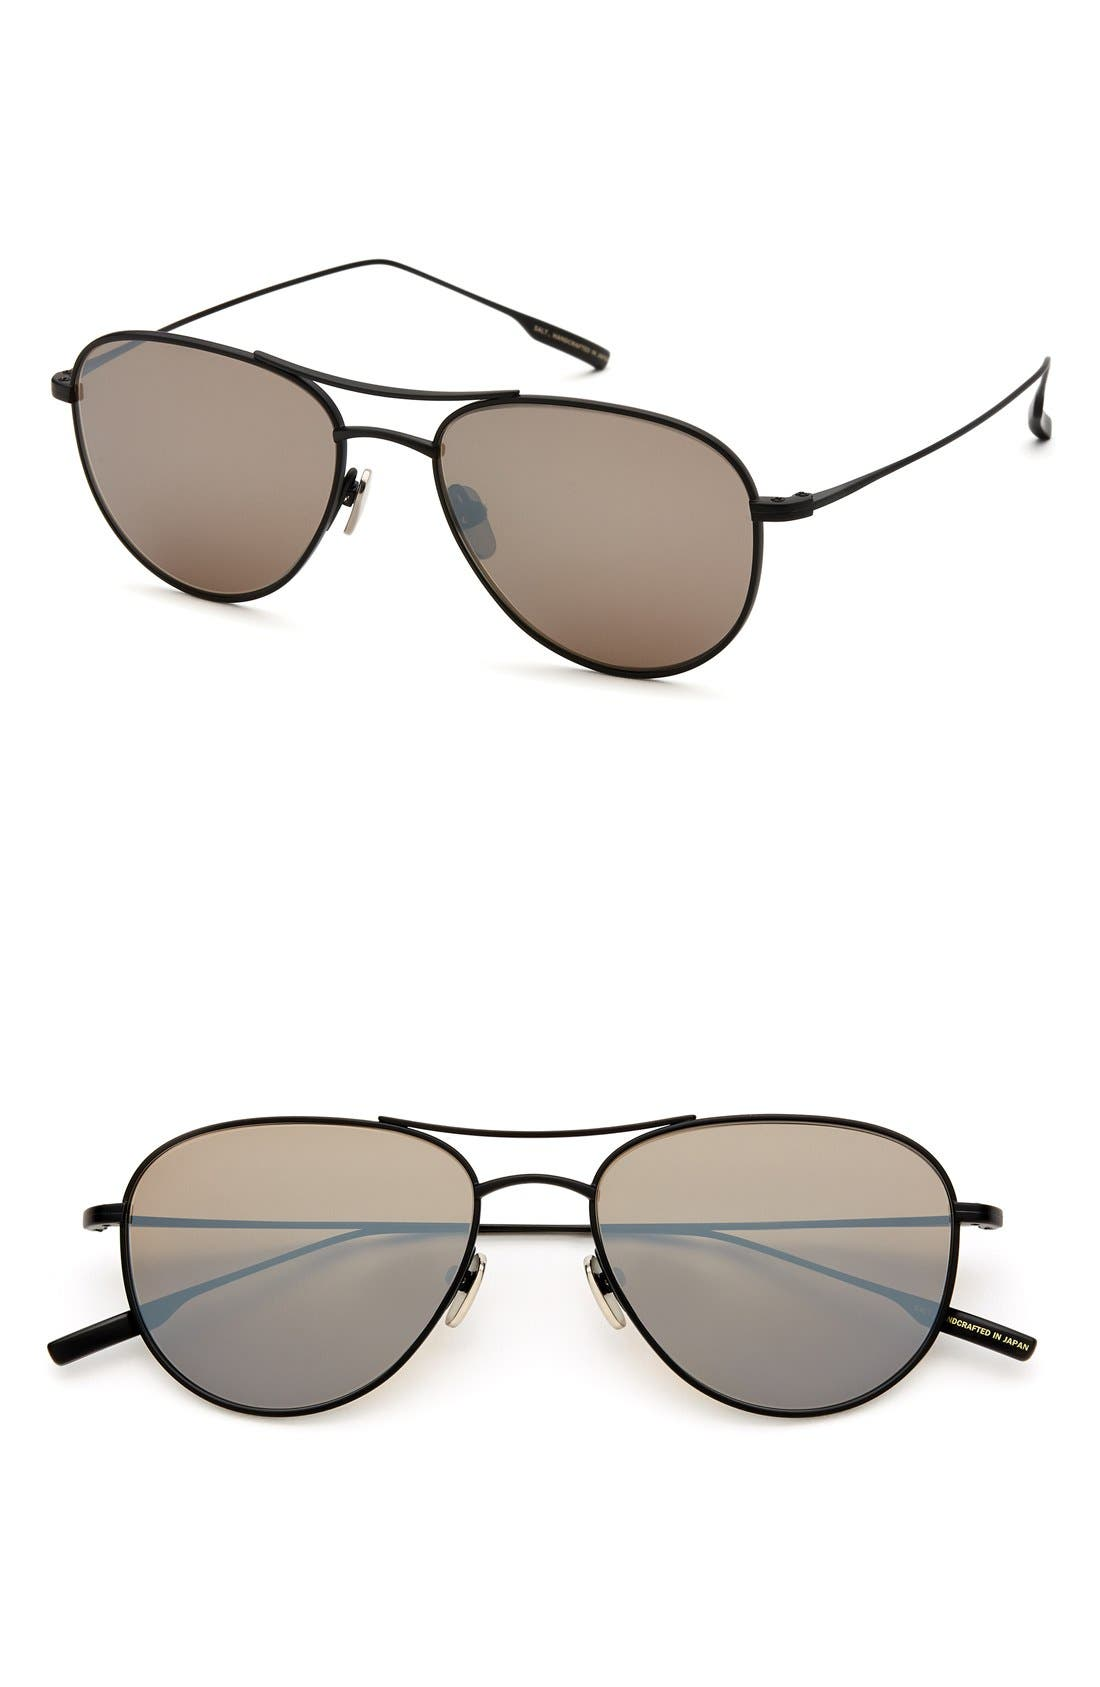 'Meadows' 54mm Polarized Aviator Sunglasses,                             Main thumbnail 1, color,                             010